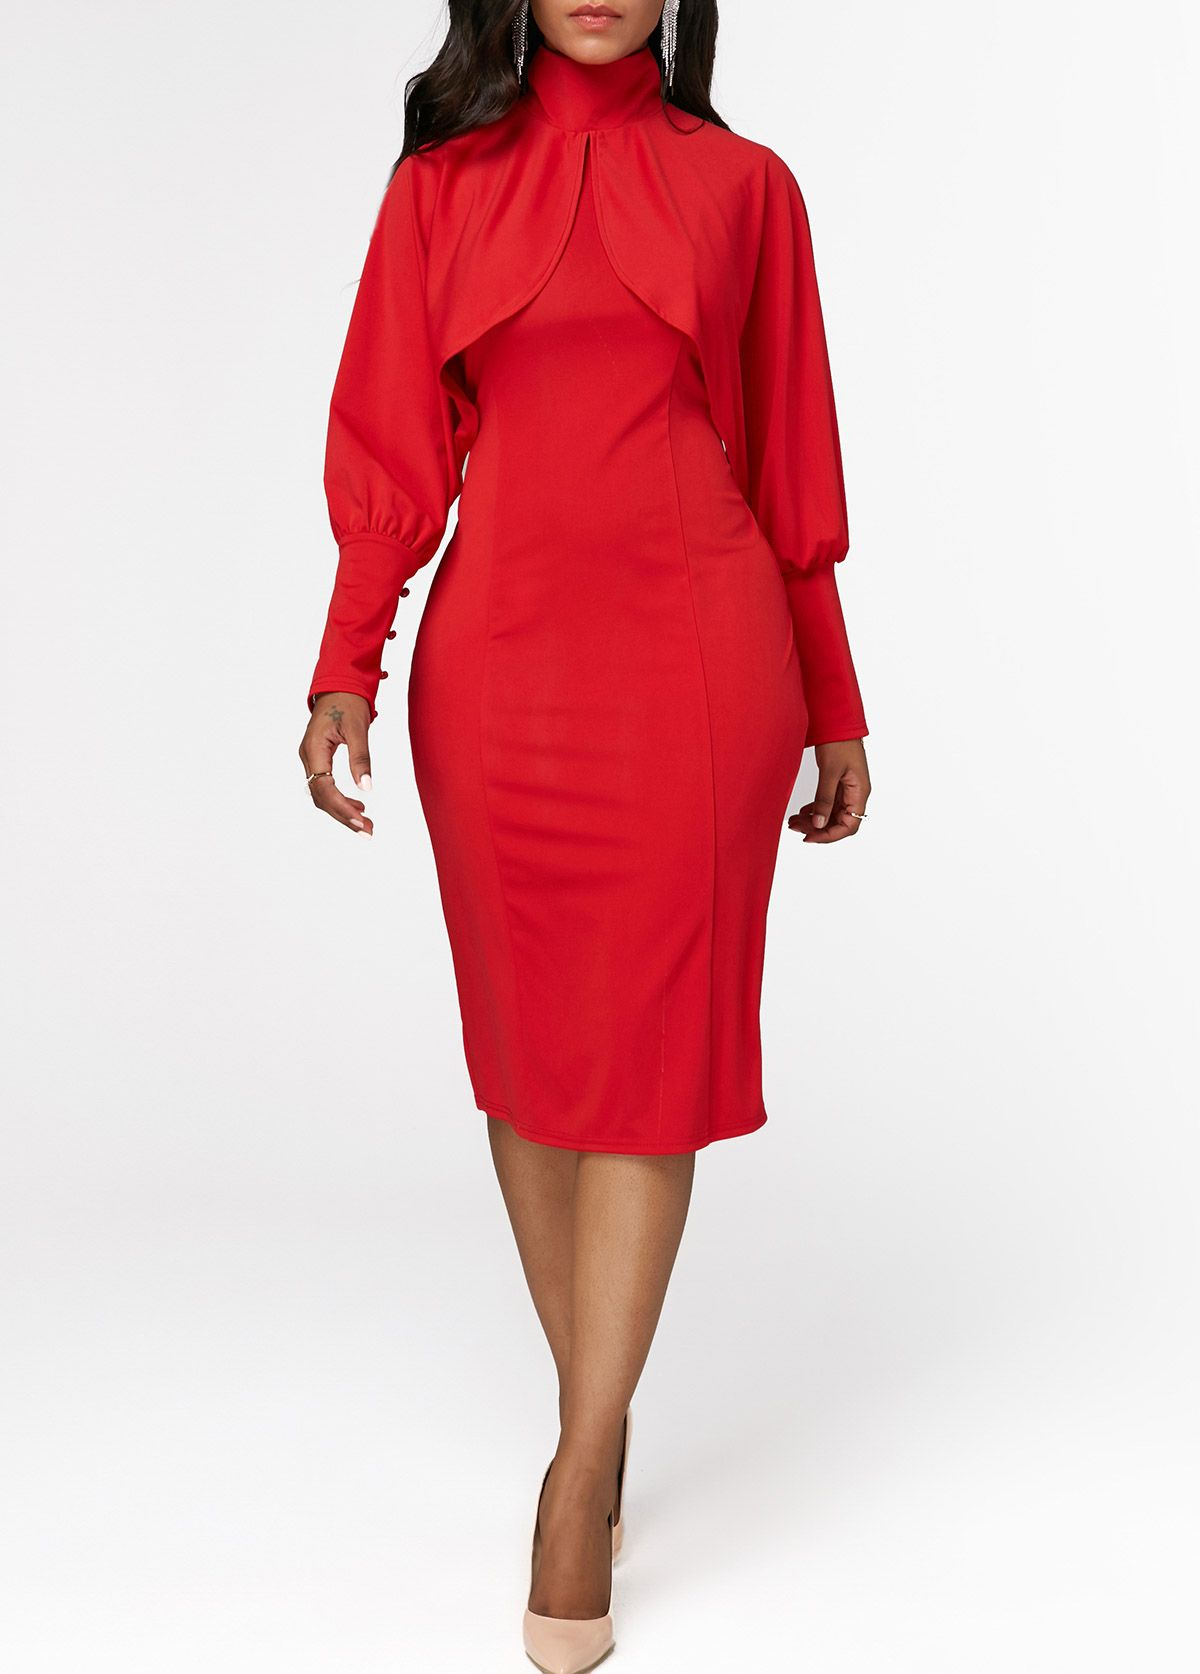 Gelbe halbe badezimmerideen back slit long sleeve red sheath dress in   kleider  pinterest